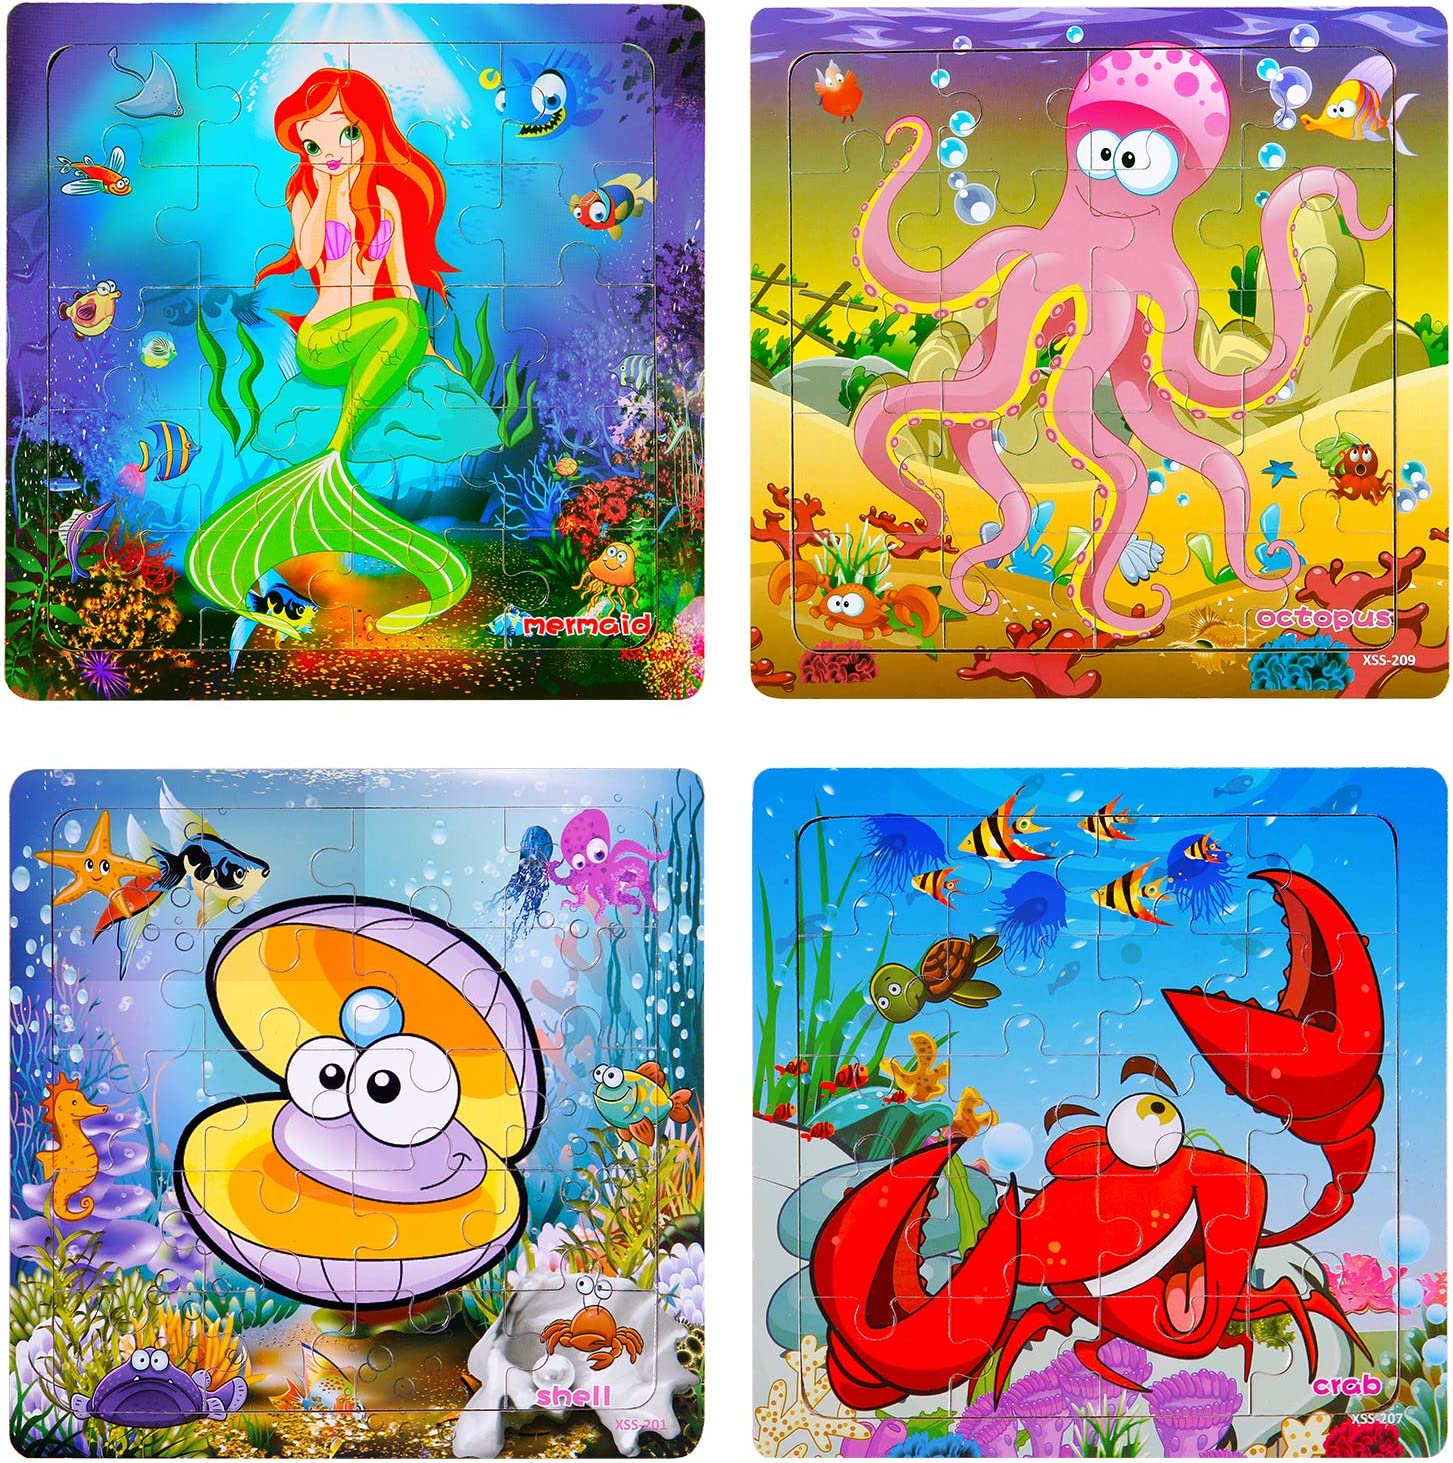 Puzzles for Kids Ages 3-5 Toddler Pack Pieces Max 44% OFF 20 4 Las Vegas Mall Woode